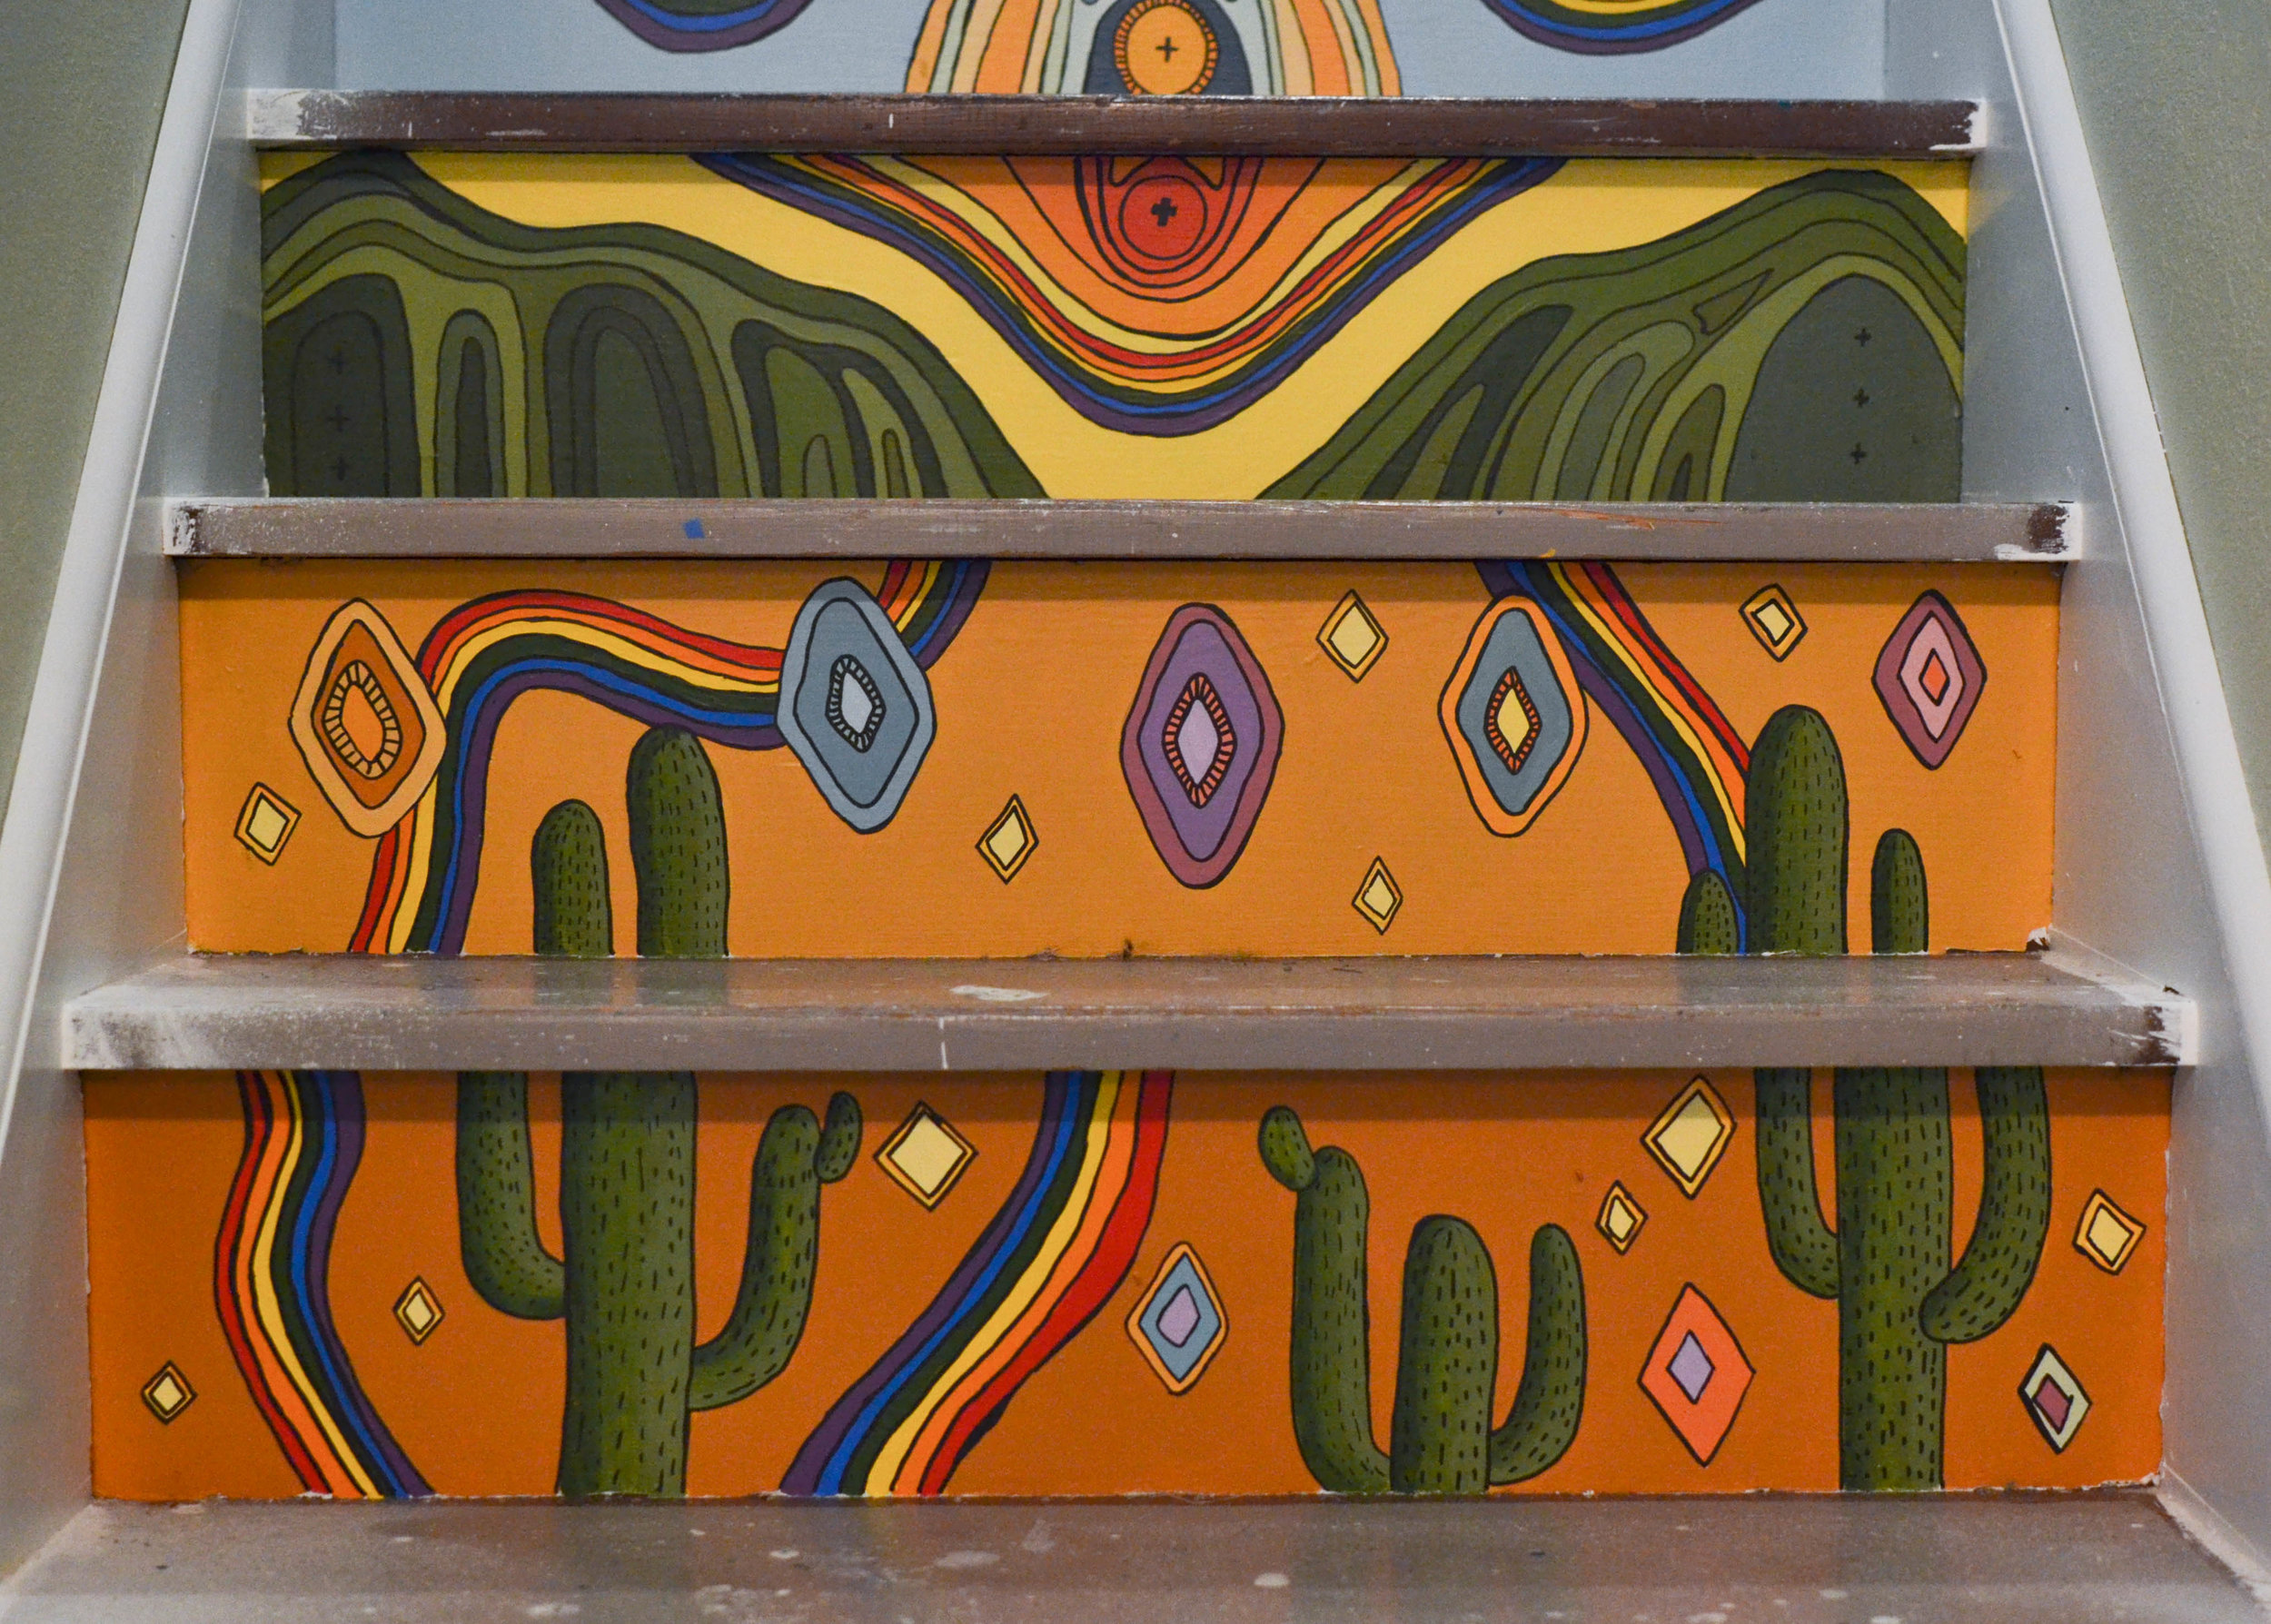 Mural on stairs - A magical, Arizona themed mural